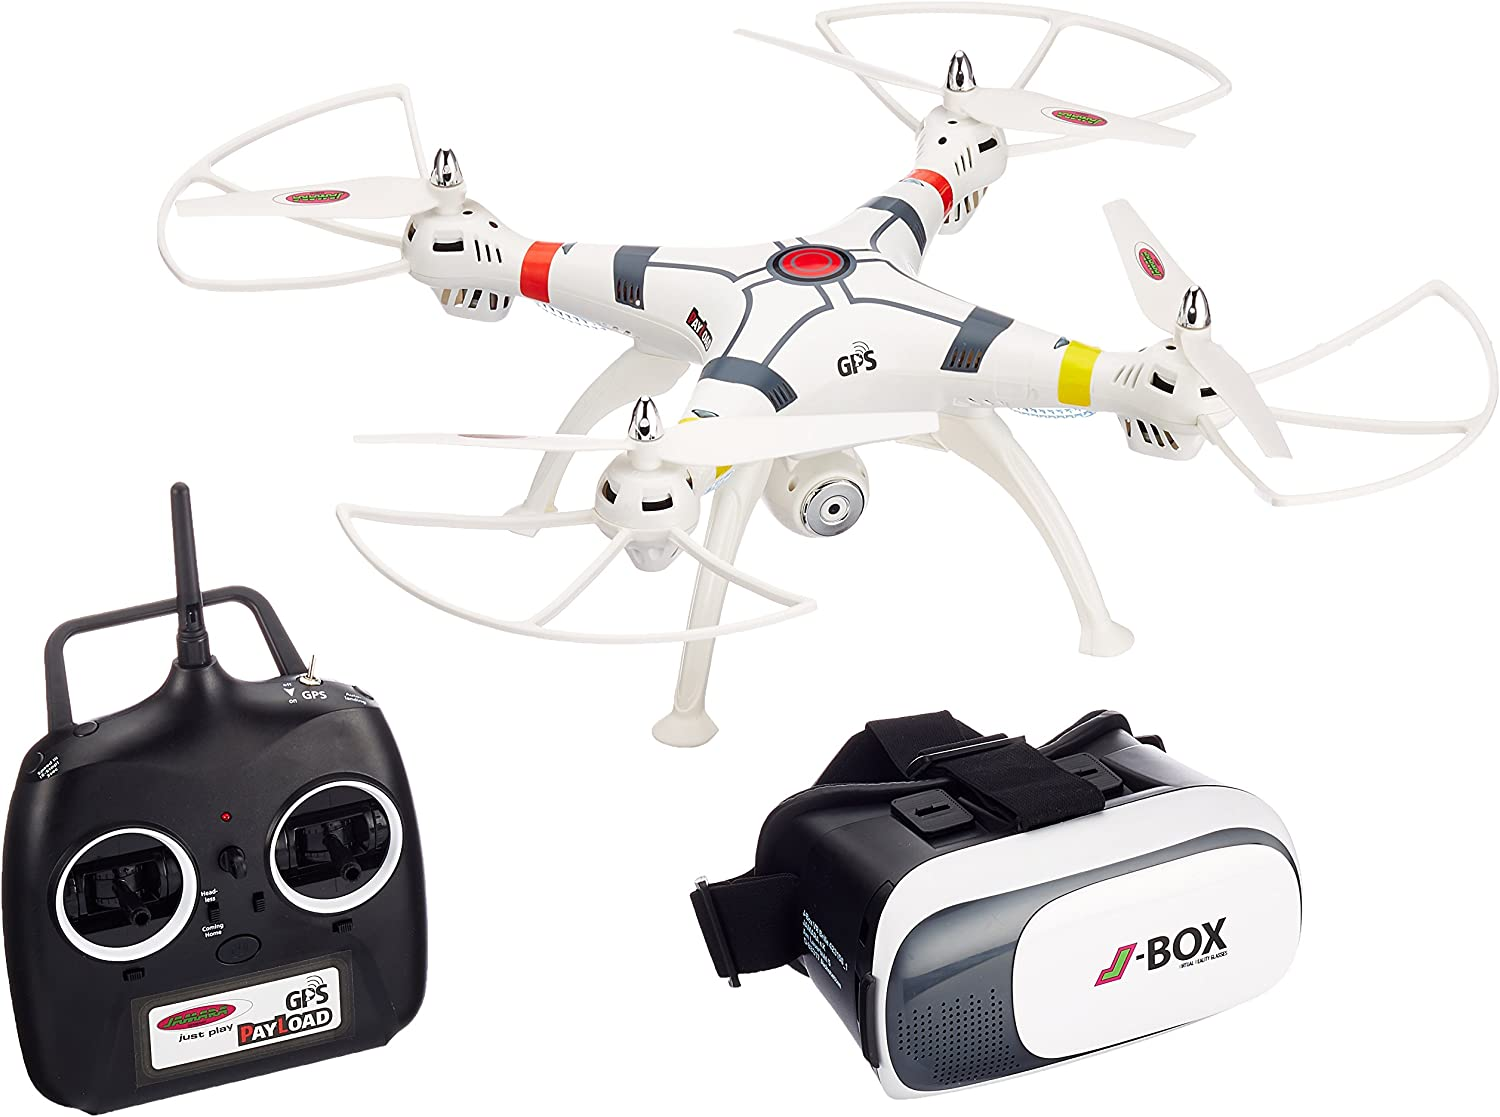 Jamara 422035 - Payload GPS VR Drone Altitude HD FPV Wifi ComingHome – Position Hold via GPS, auto. Start-  und Landefunktion, Hhenkontrolle, Track following -Flugbahn-Planung-Modus,Zuladung bis 350g